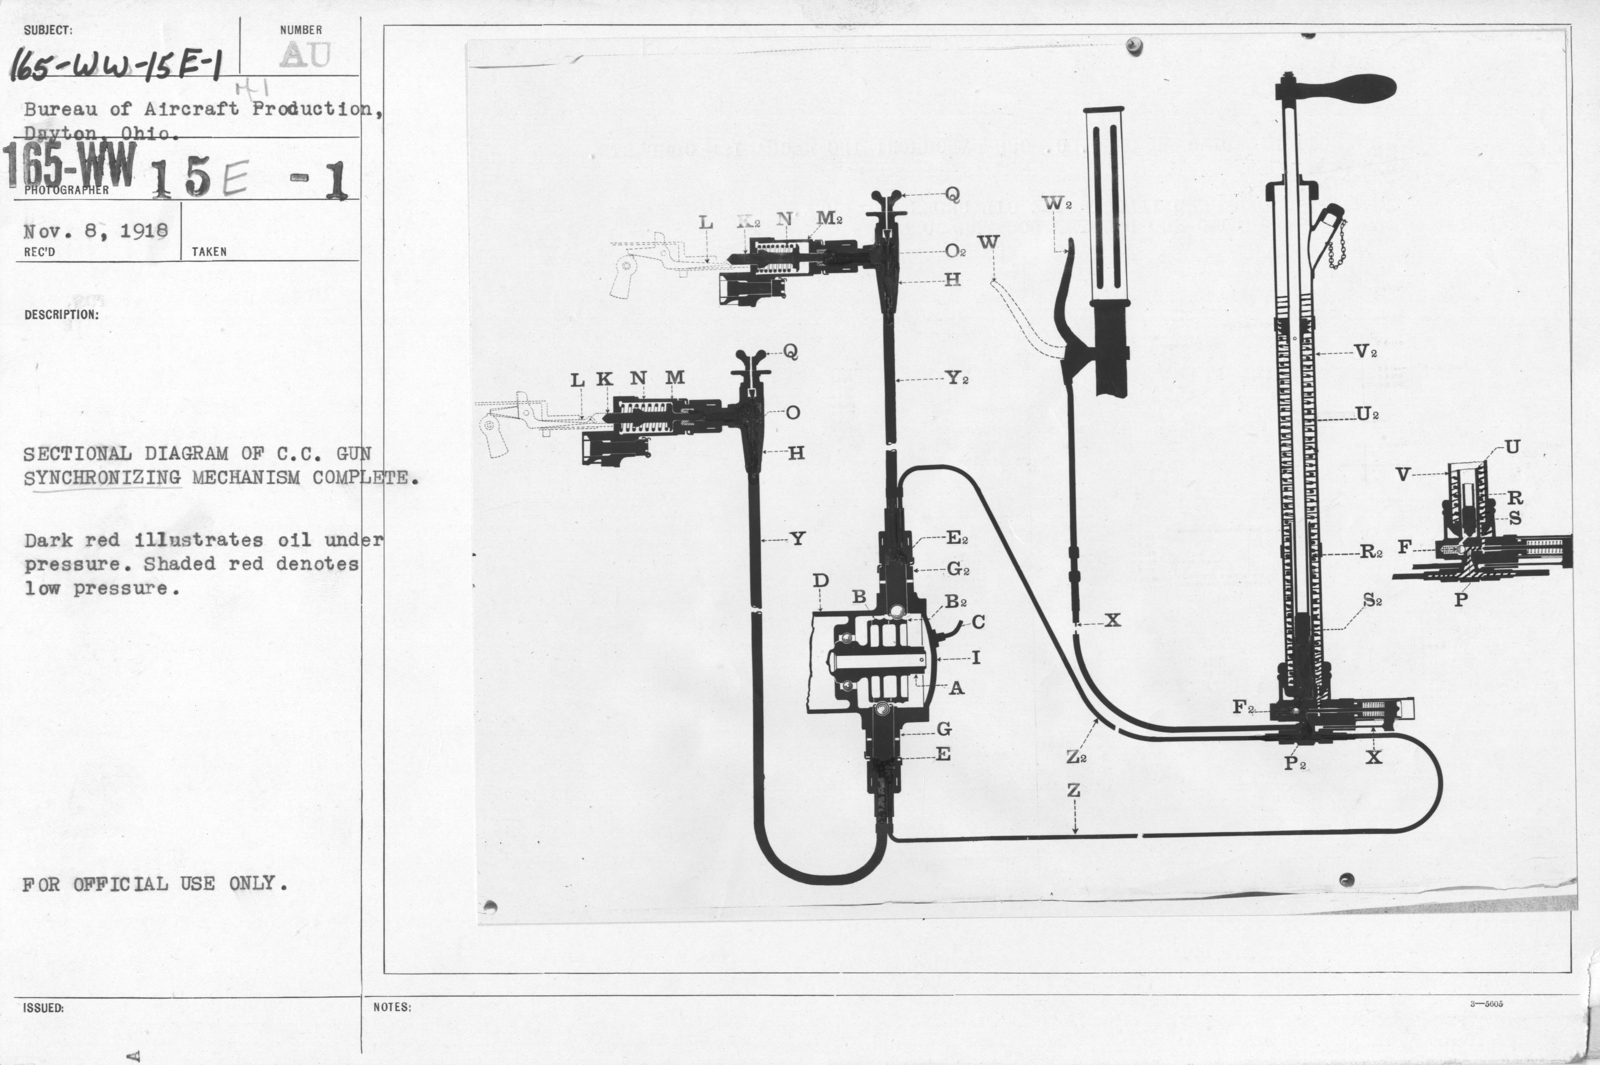 hight resolution of airplanes ordnance sectional diagram of c c gun synchronizing mechanism complete dark red illustrates